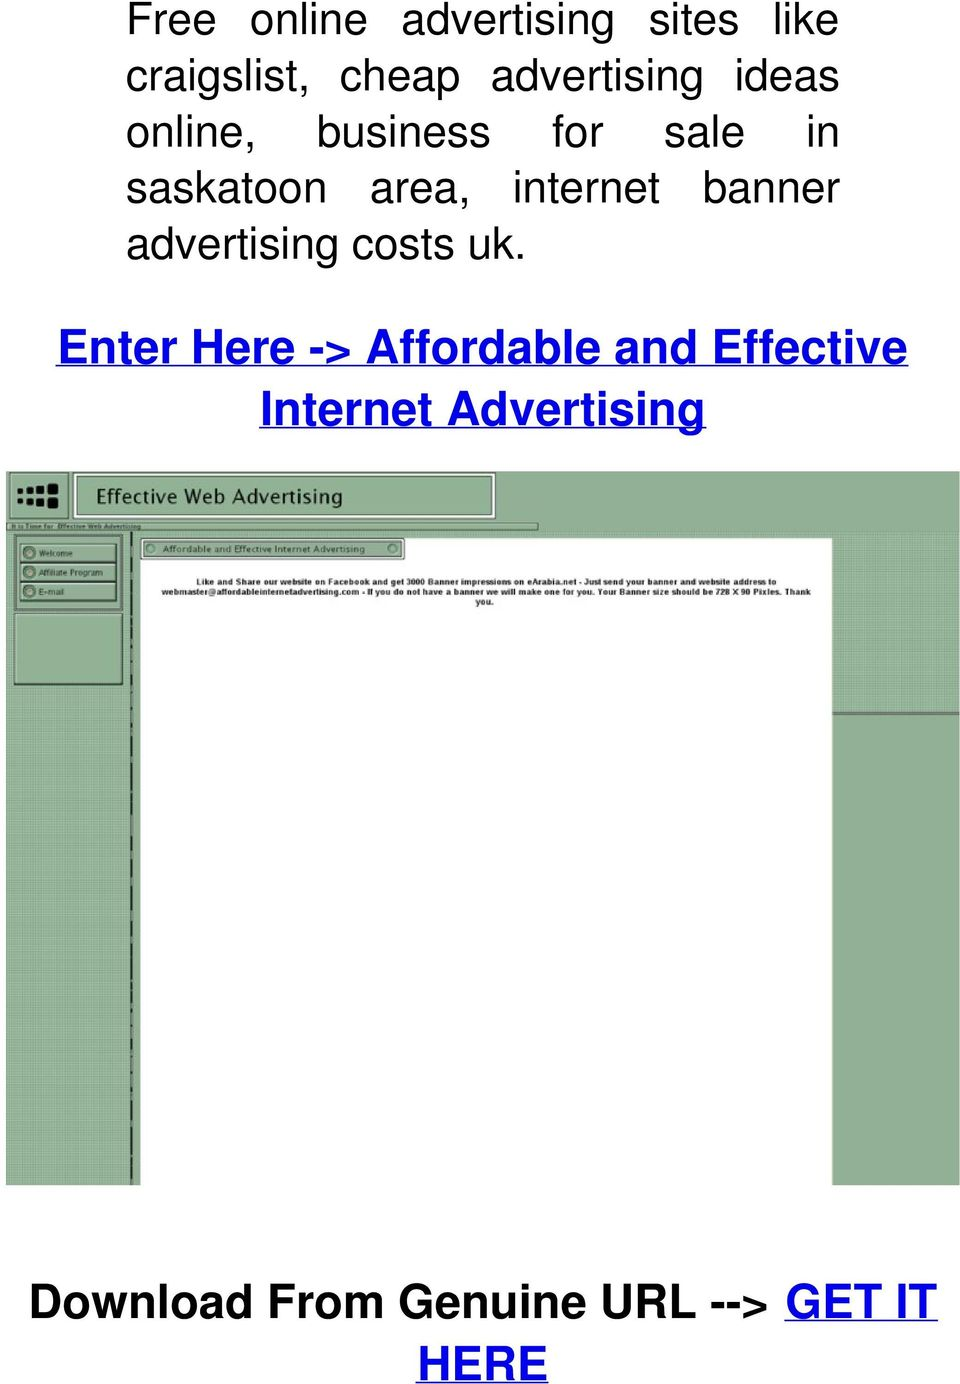 internet banner advertising costs uk.